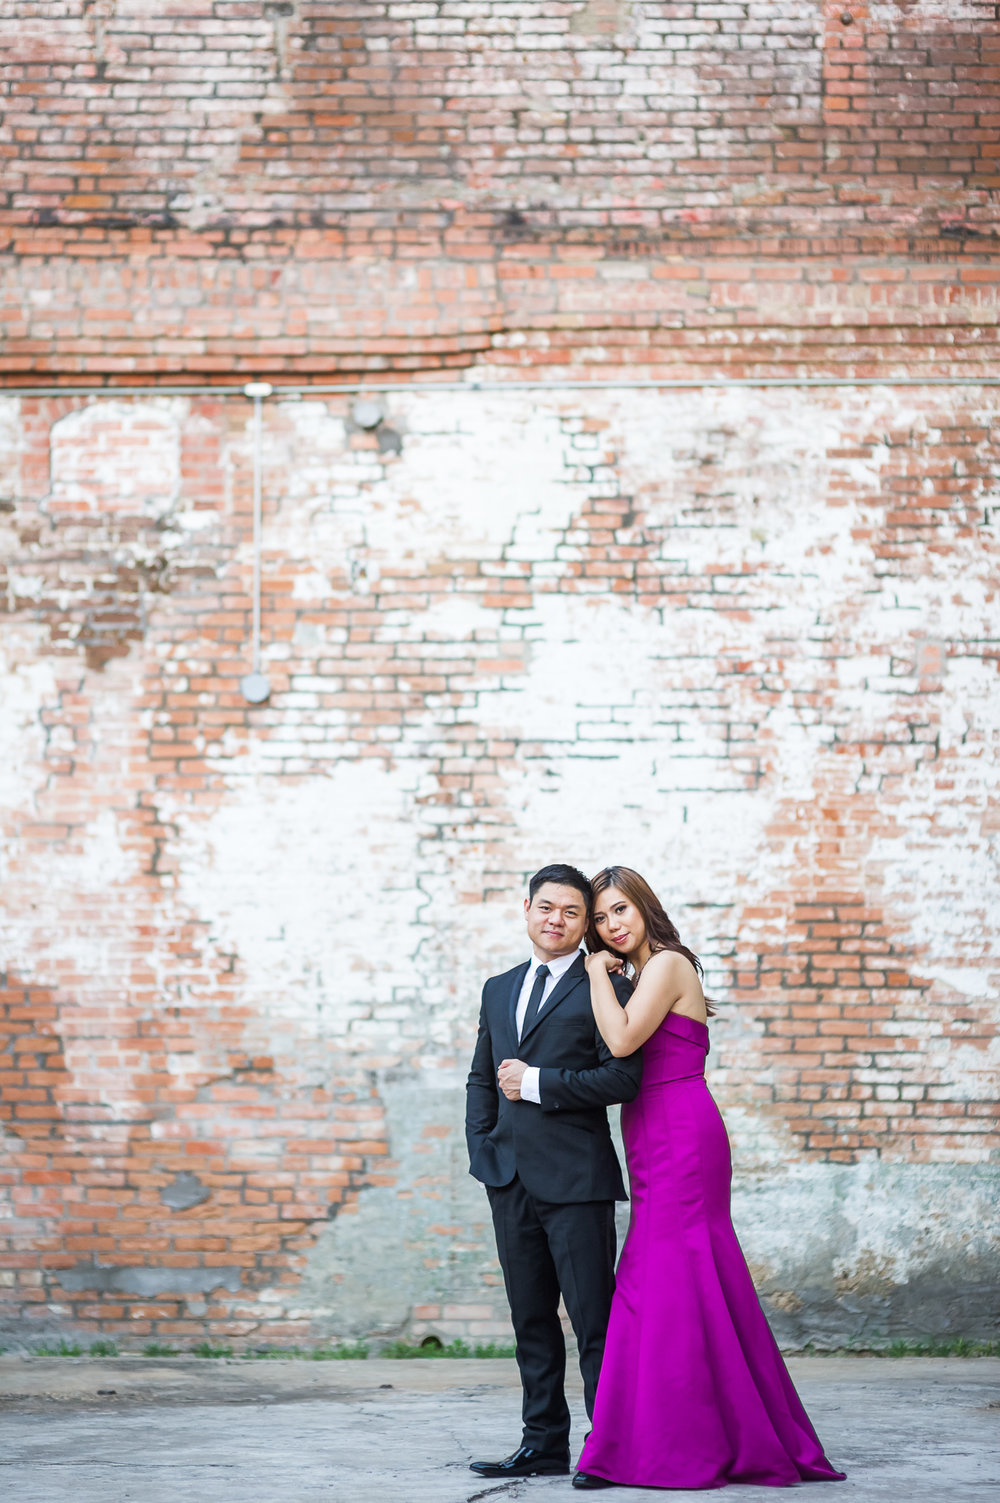 66-David Loi Studios - Cotton Mill - Mckinney Texas - Engagement Session-14283.jpg